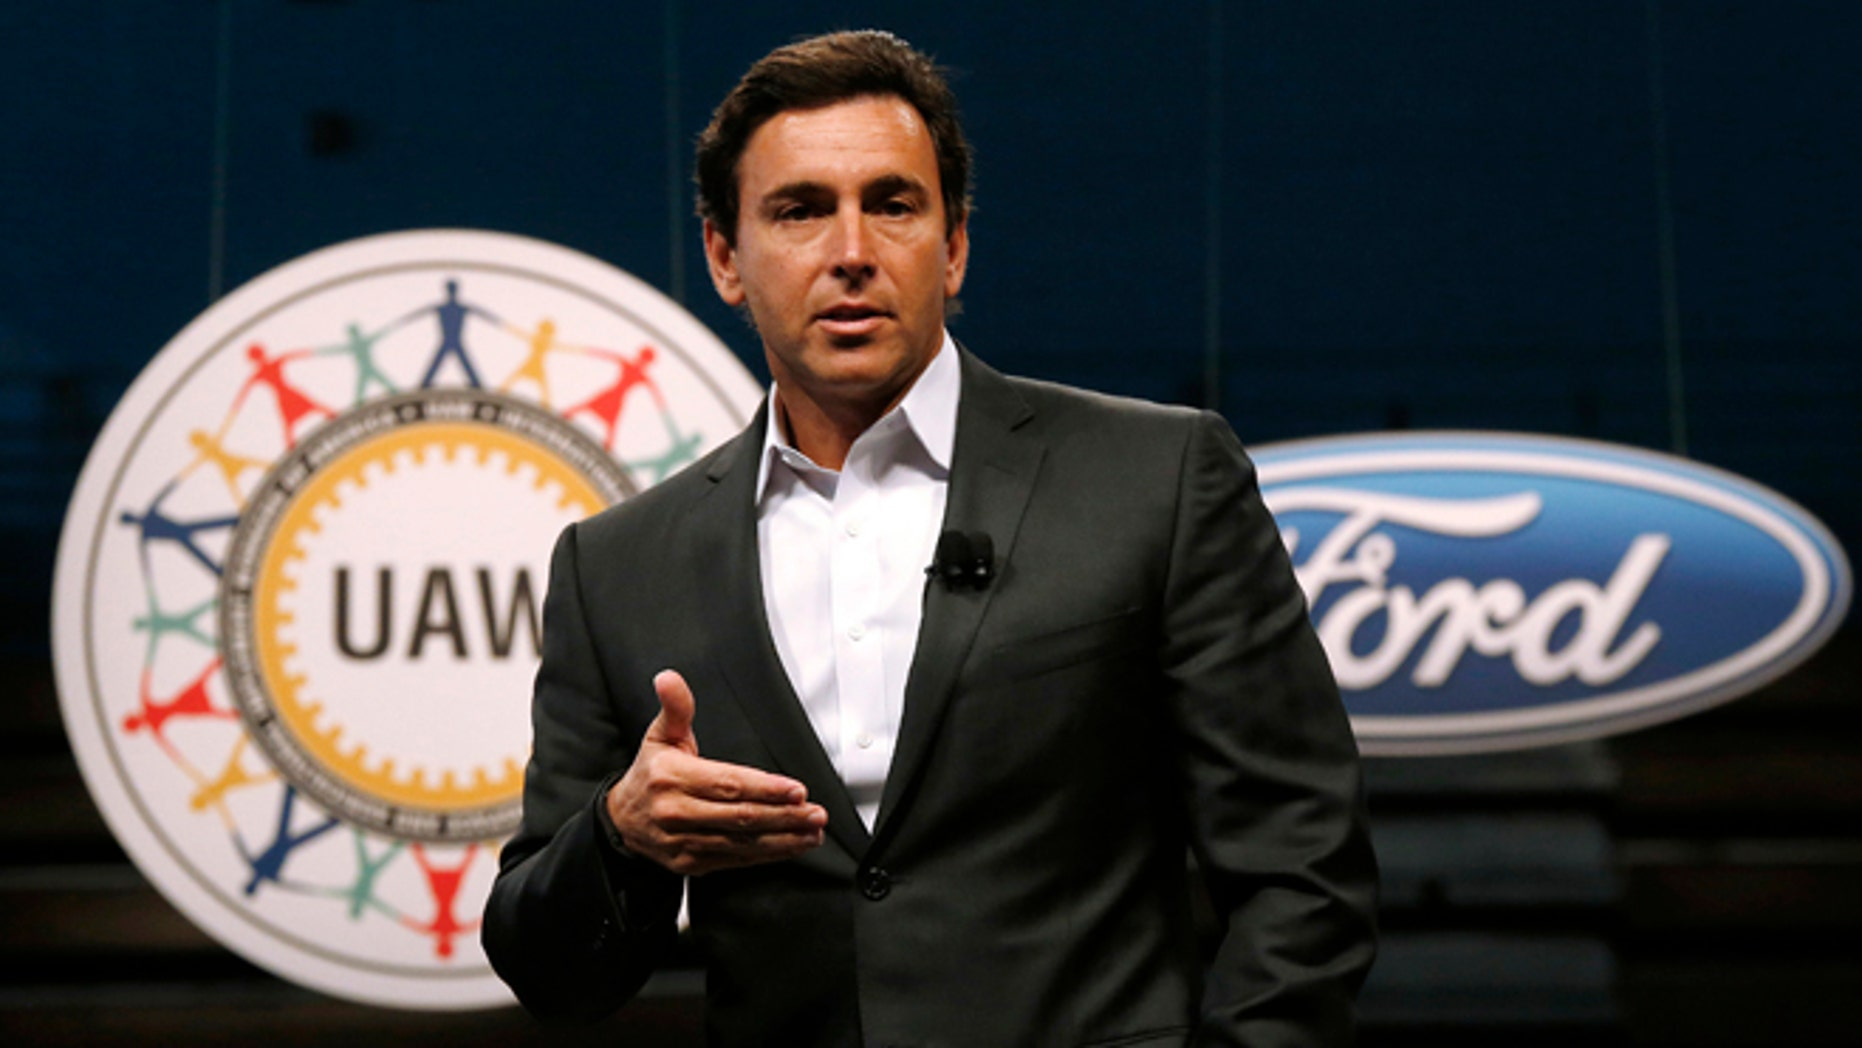 FILE - In this Thursday, July 23, 2015, file photo, Ford Motor Company President and CEO Mark Fields speaks during a ceremony to mark the opening of contract negotiations with the United Auto Workers in Detroit. (AP Photo/Paul Sancya, File)